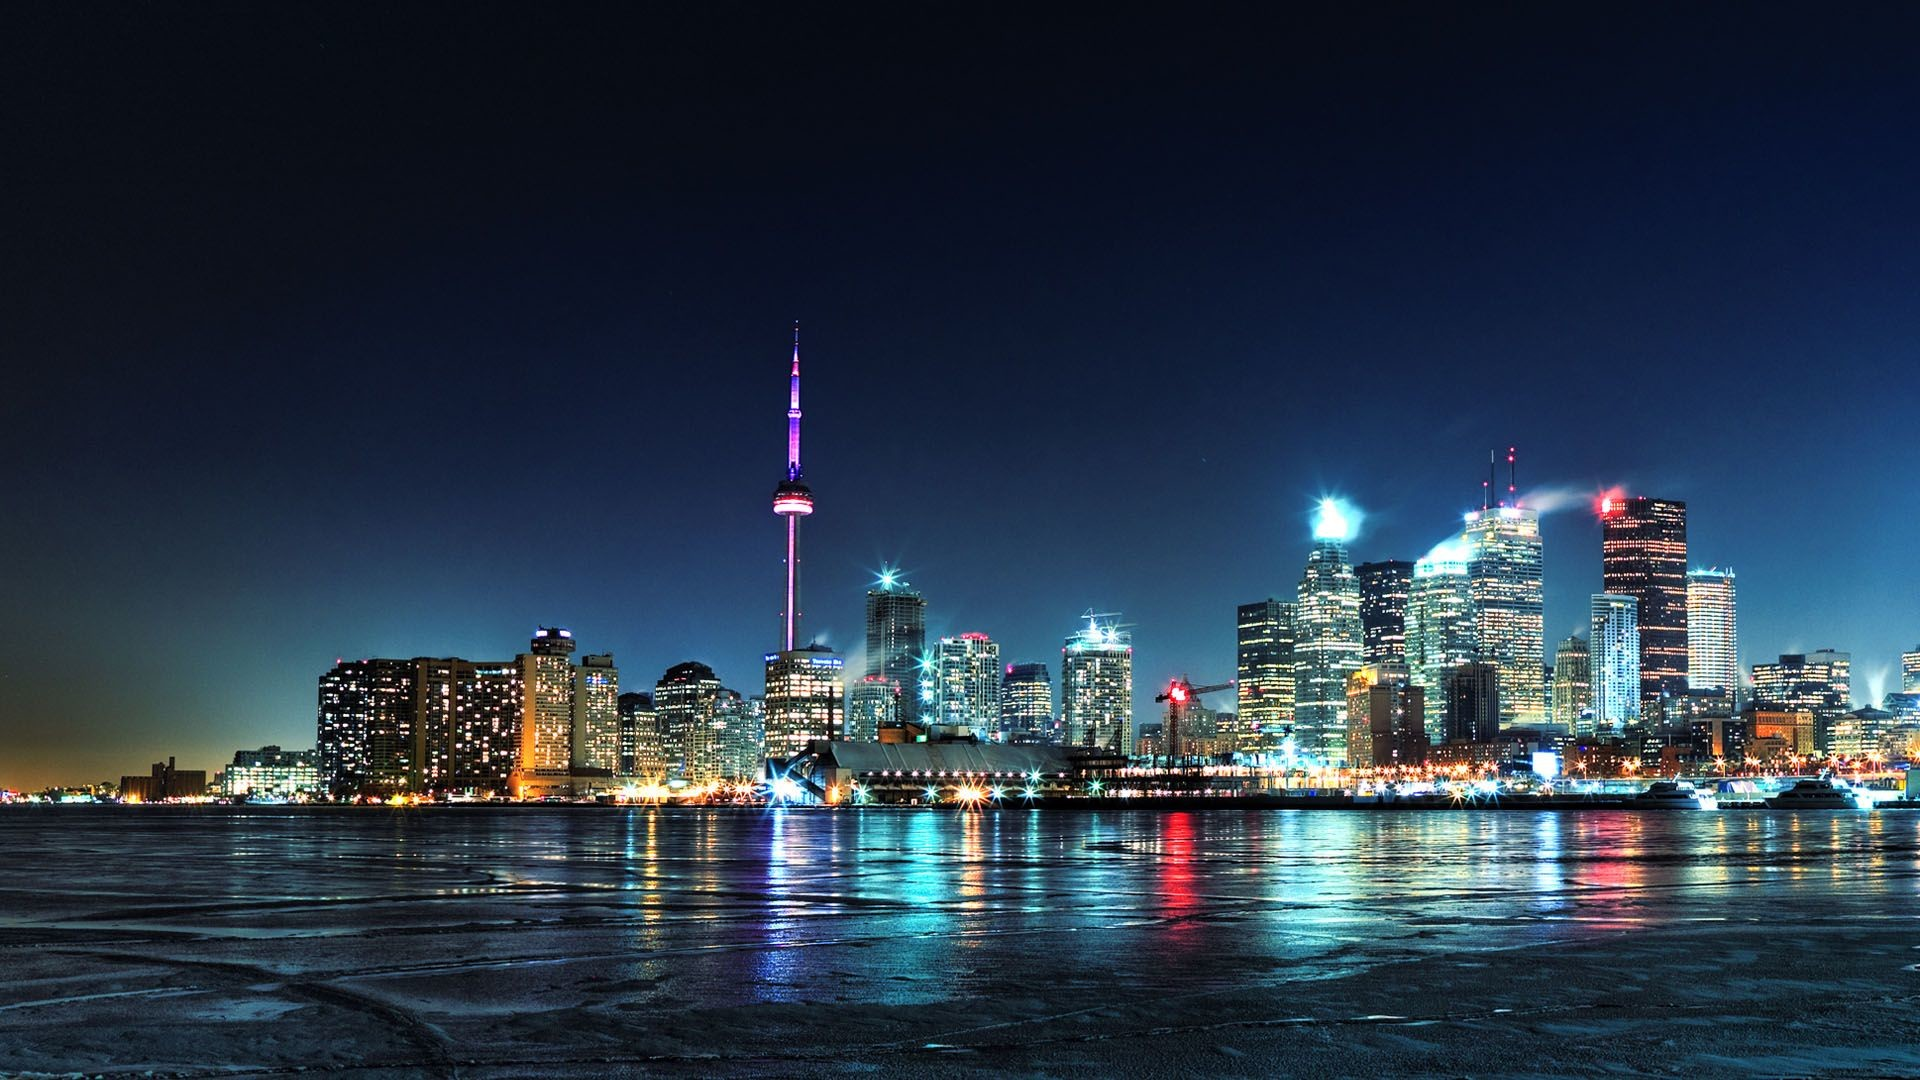 1920x1080 wallpaper tags toronto night city city lights share this wallpaper